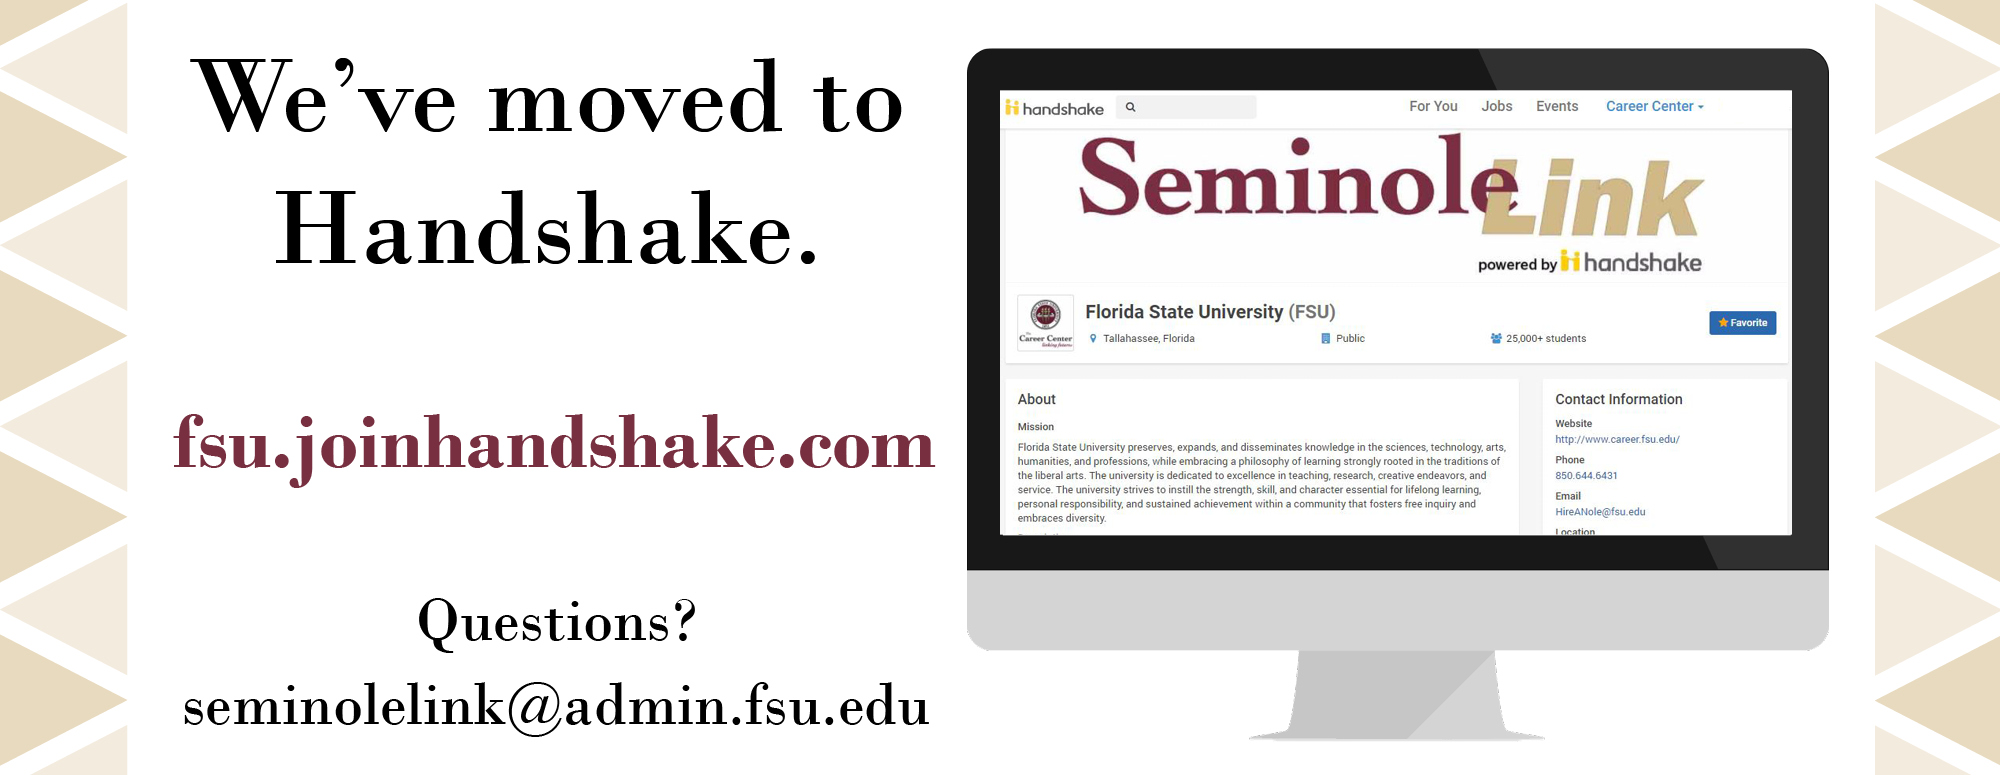 SeminoleLink powered by Handshake